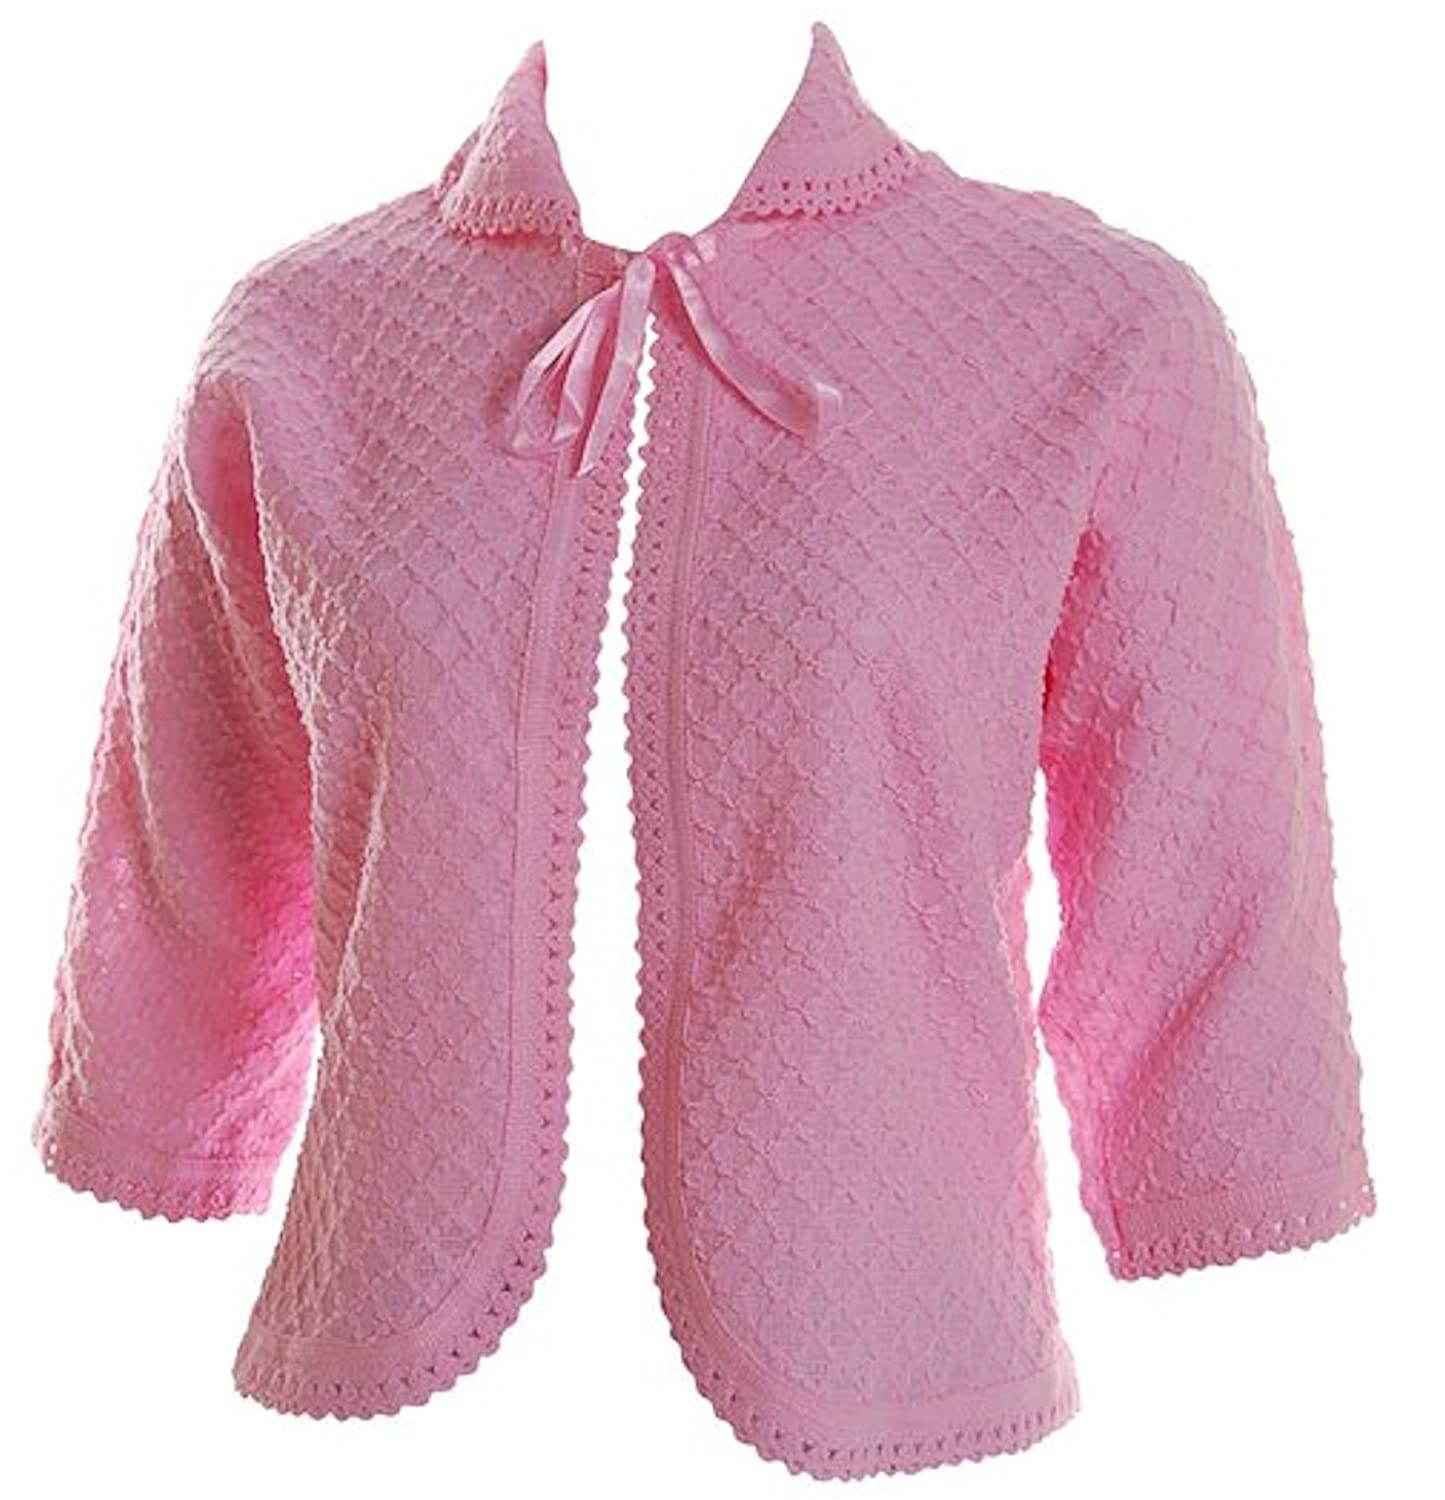 Vintage Nightgowns, Pajamas, Baby Dolls, Robes Lady Olga Womens Knitted Front Tie Bed Jacket Bolero Style $19.94 AT vintagedancer.com